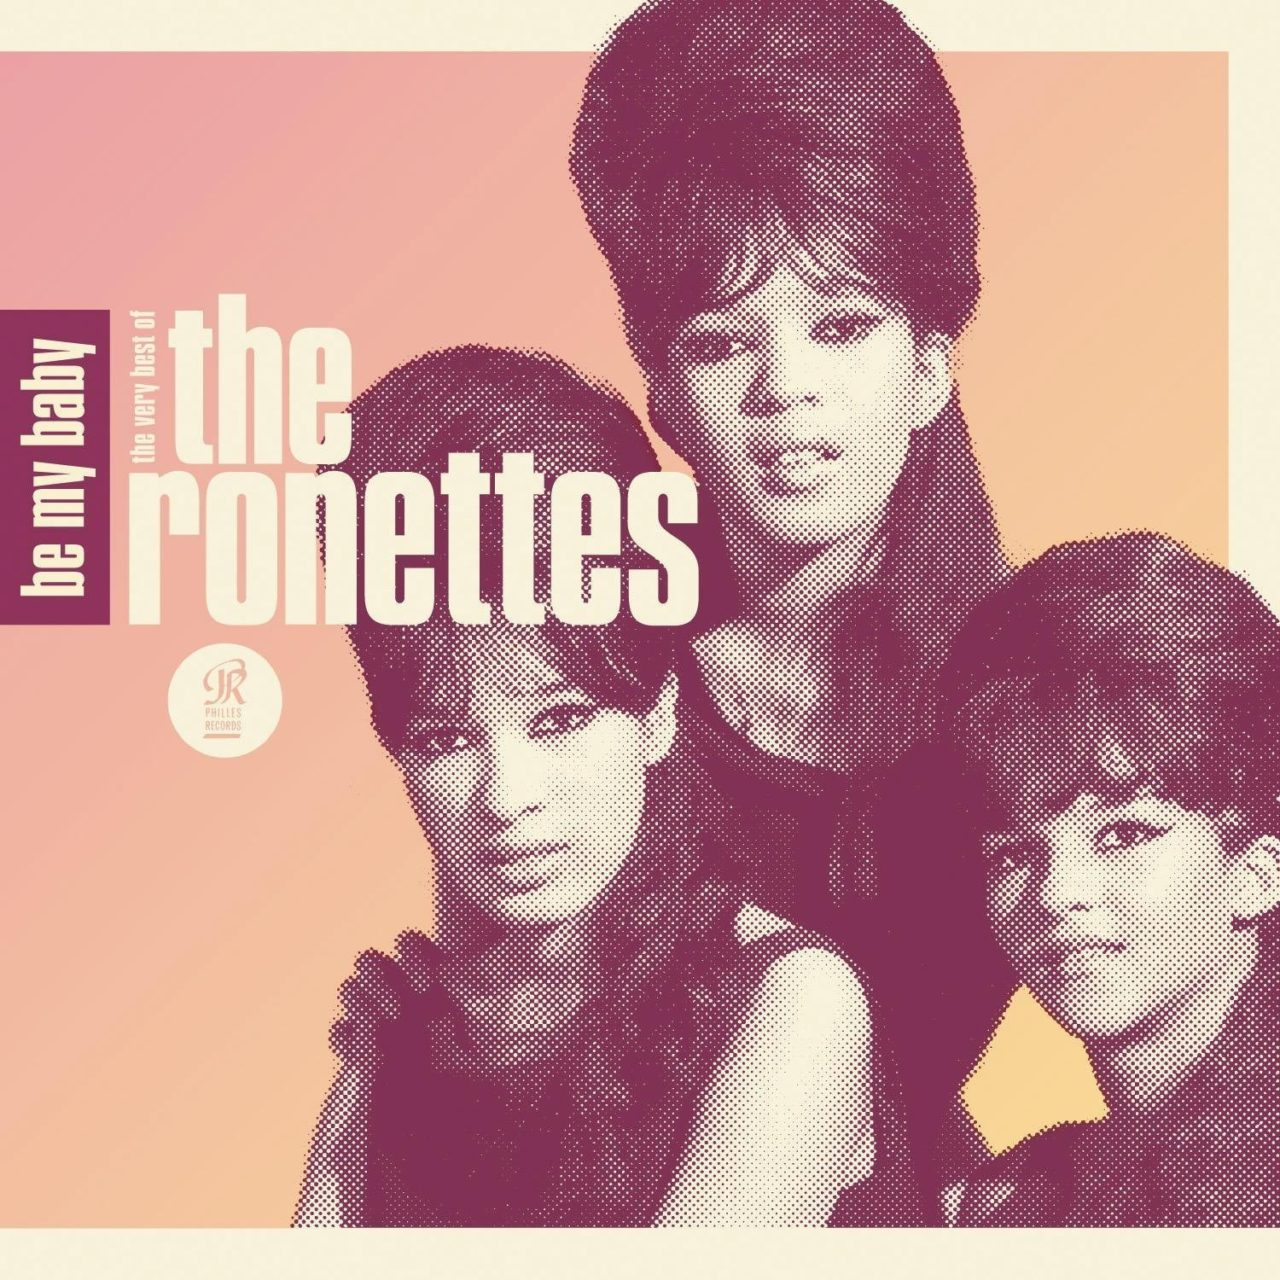 Ronettes -Be my Baby